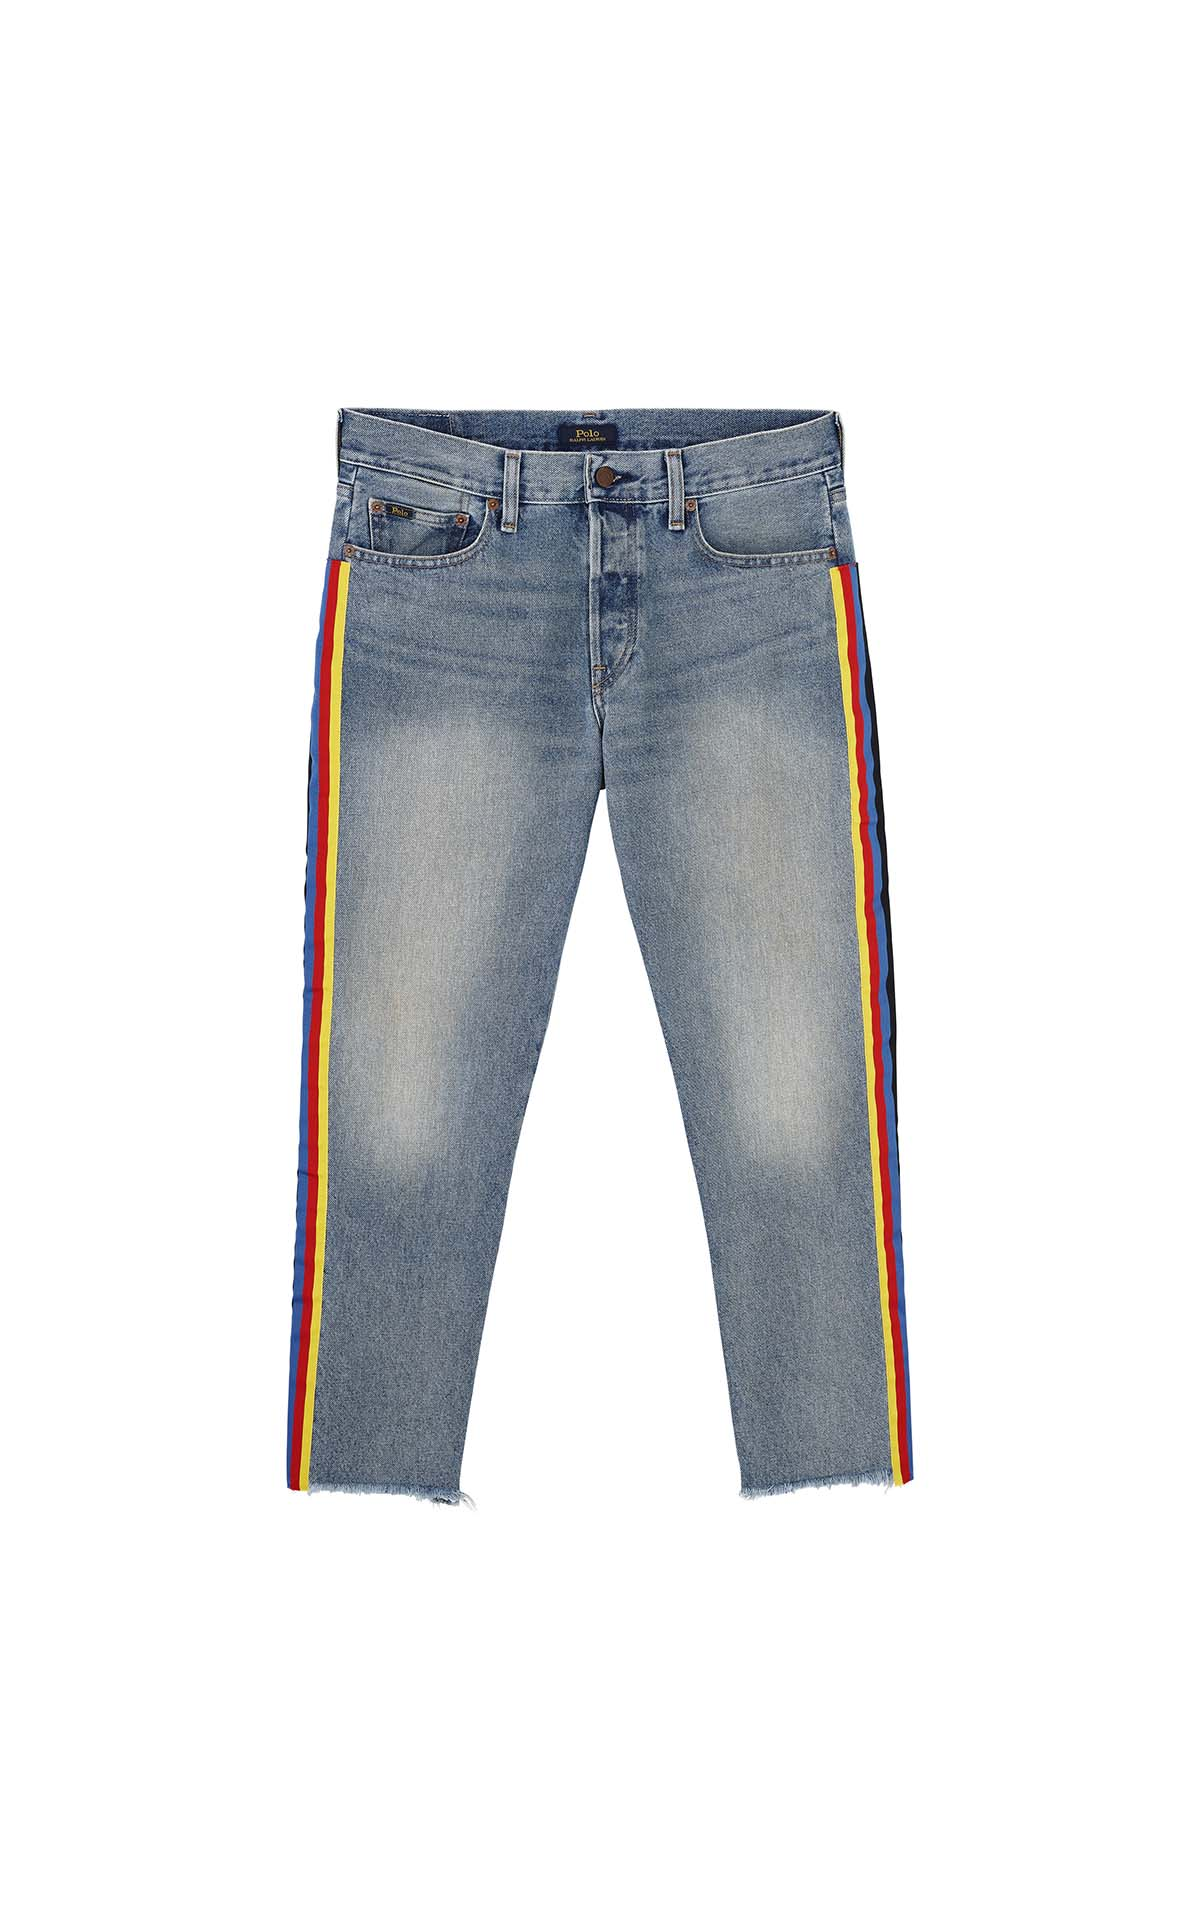 Polo Ralph Lauren Avery boyfriend jean at The Bicester Village Shopping Collection